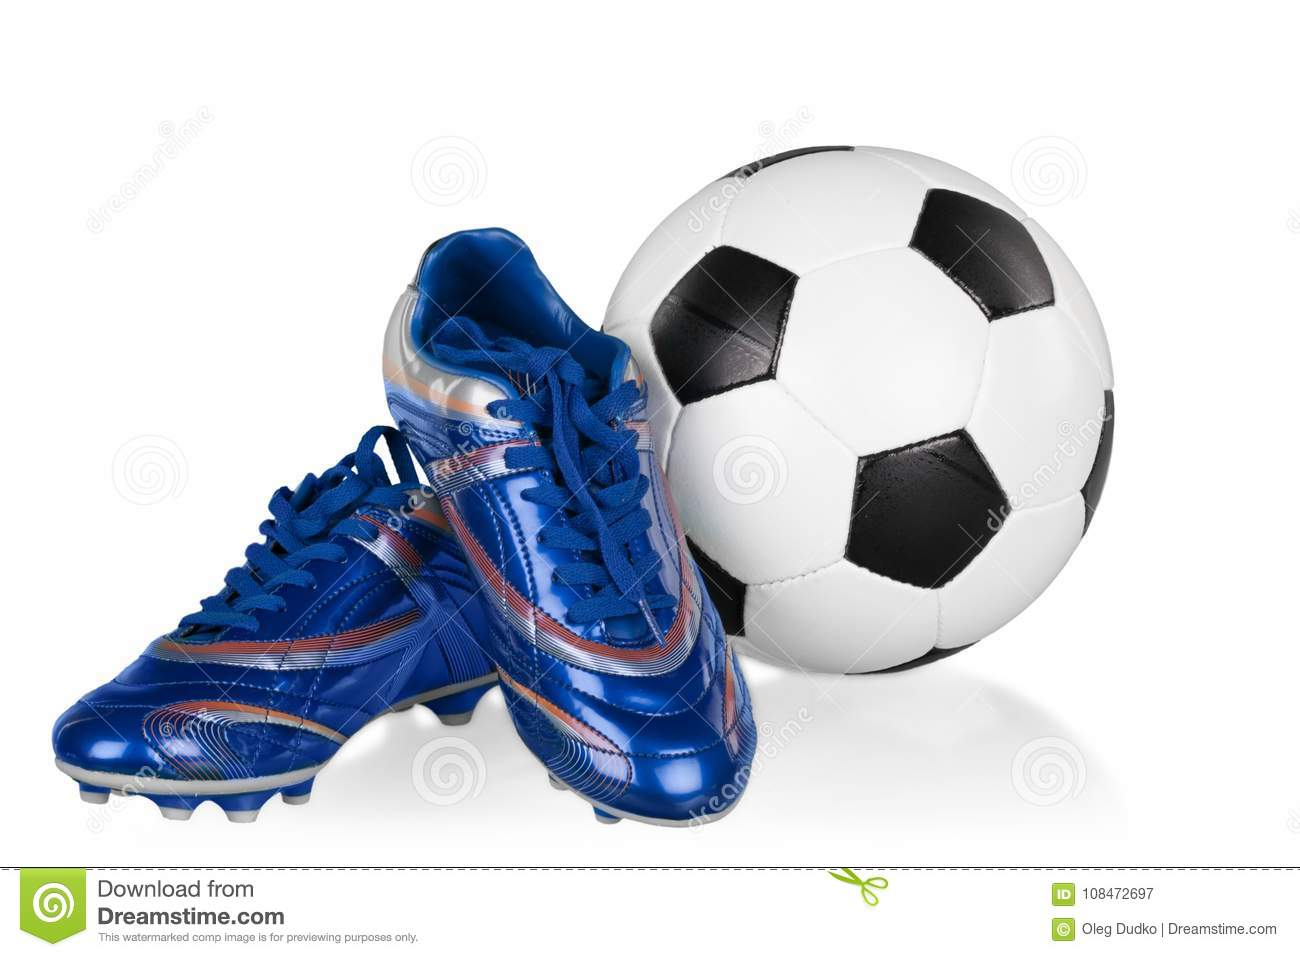 506f06874dc Blue And White Football Shoes And Soccer Ball Stock Image - Image of ...